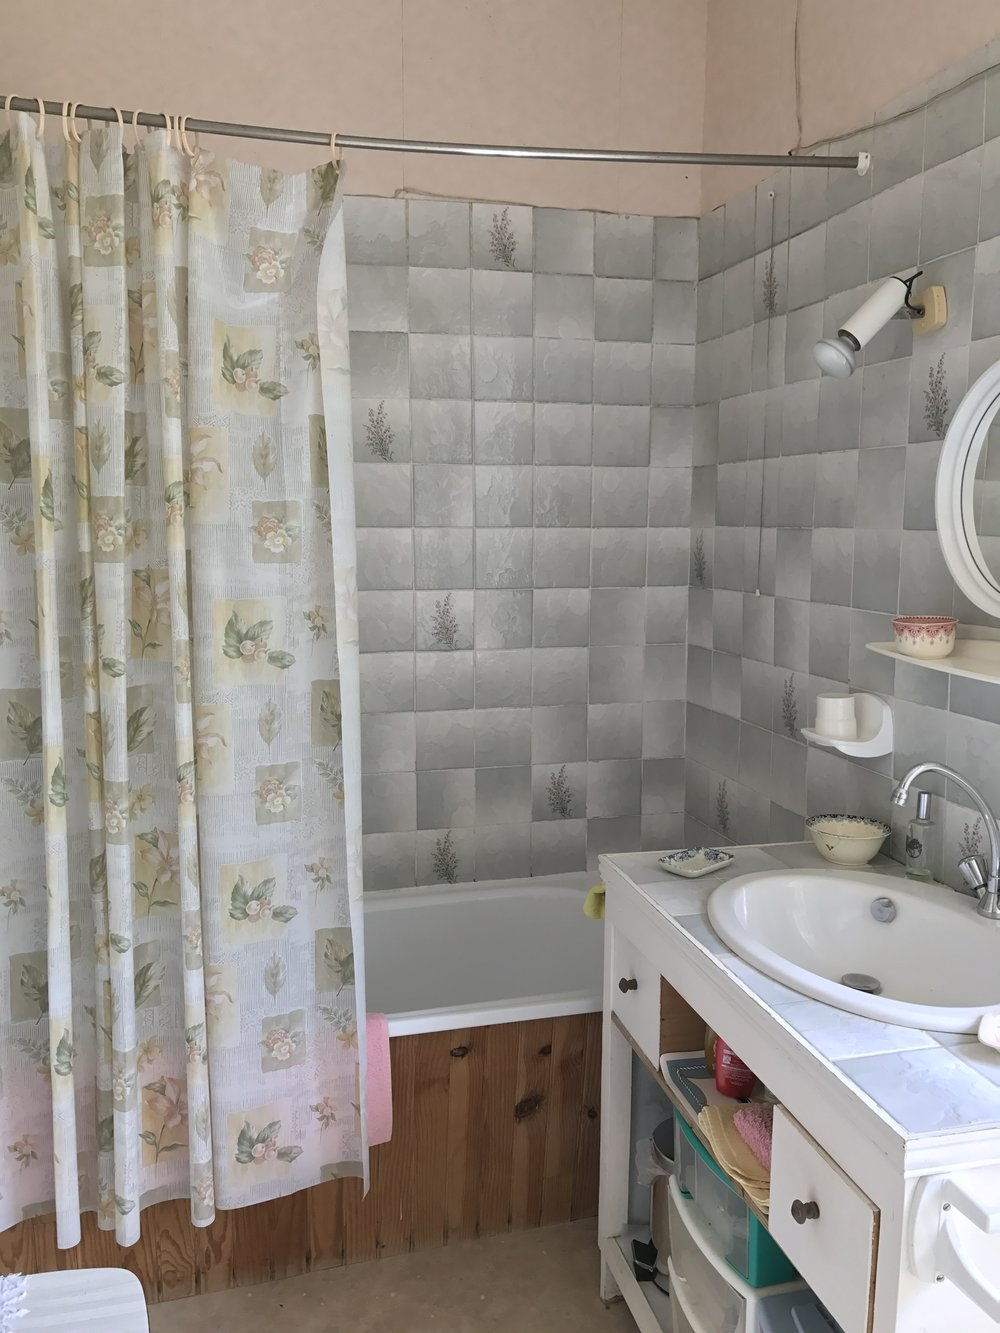 And its ensuite bathroom